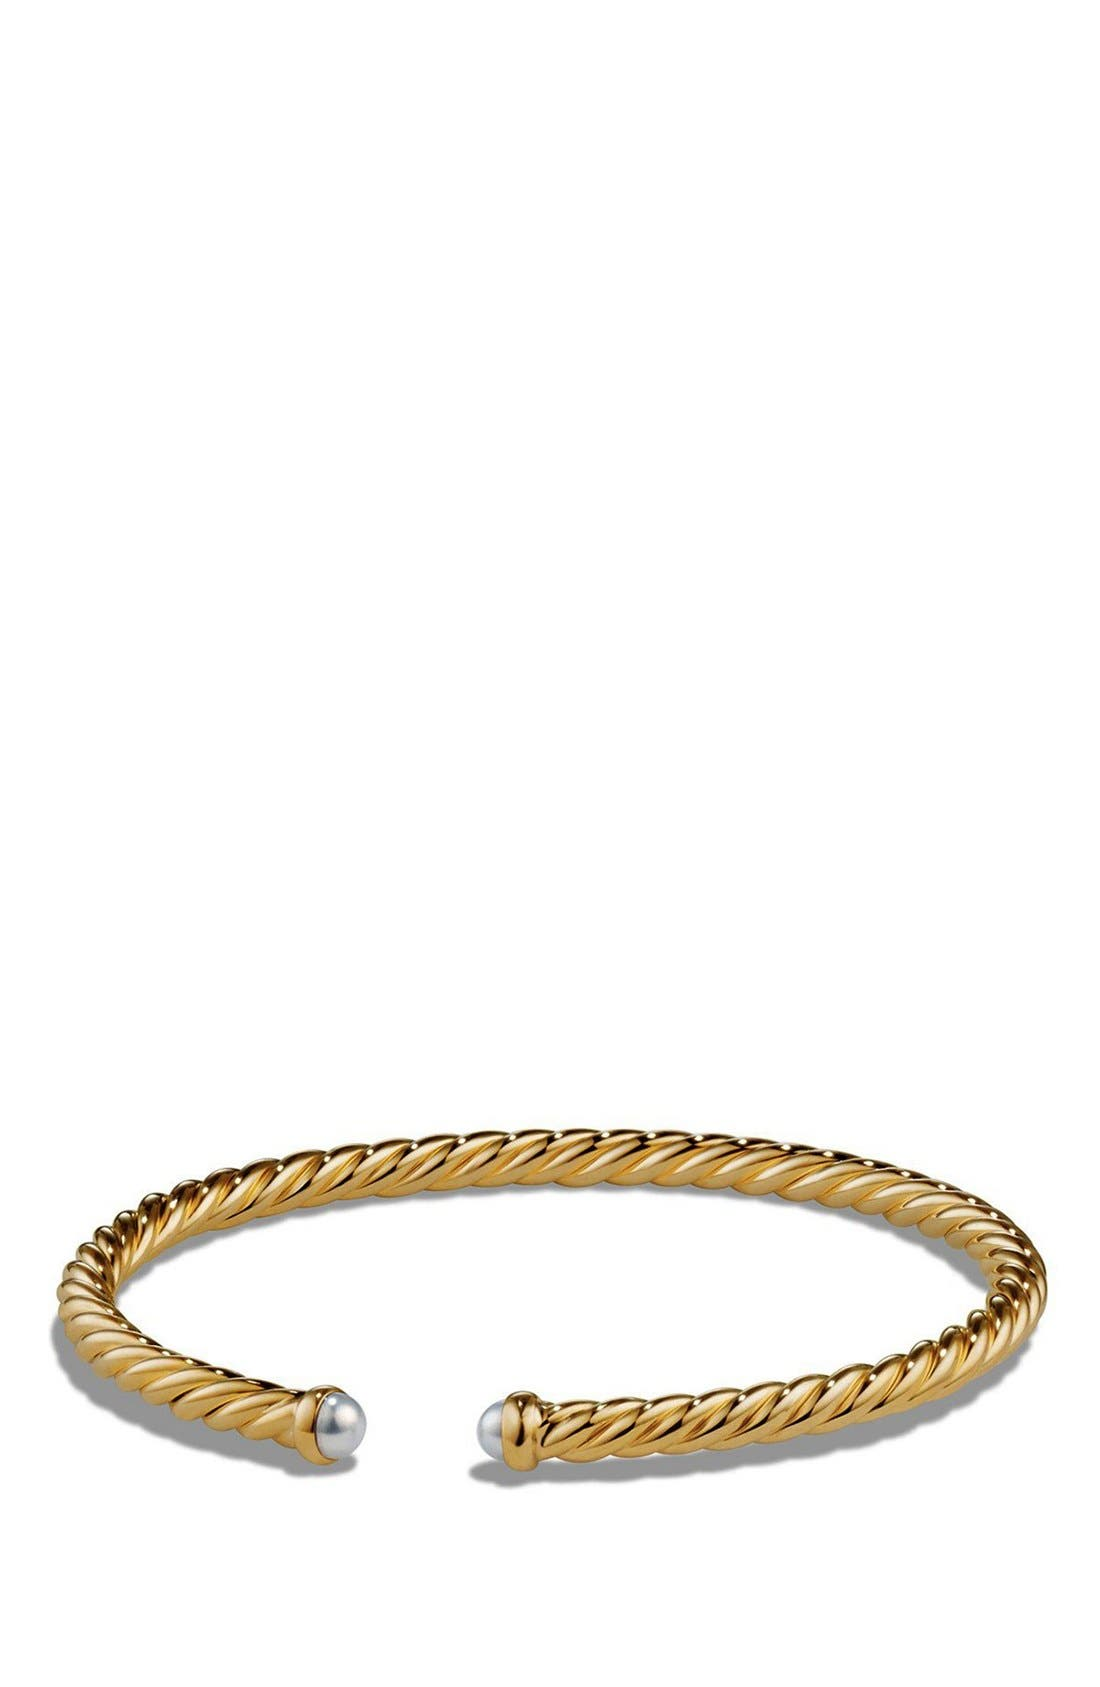 Alternate Image 1 Selected - David Yurman Cable Spira Bracelet with Semiprecious Stones in 18K Gold